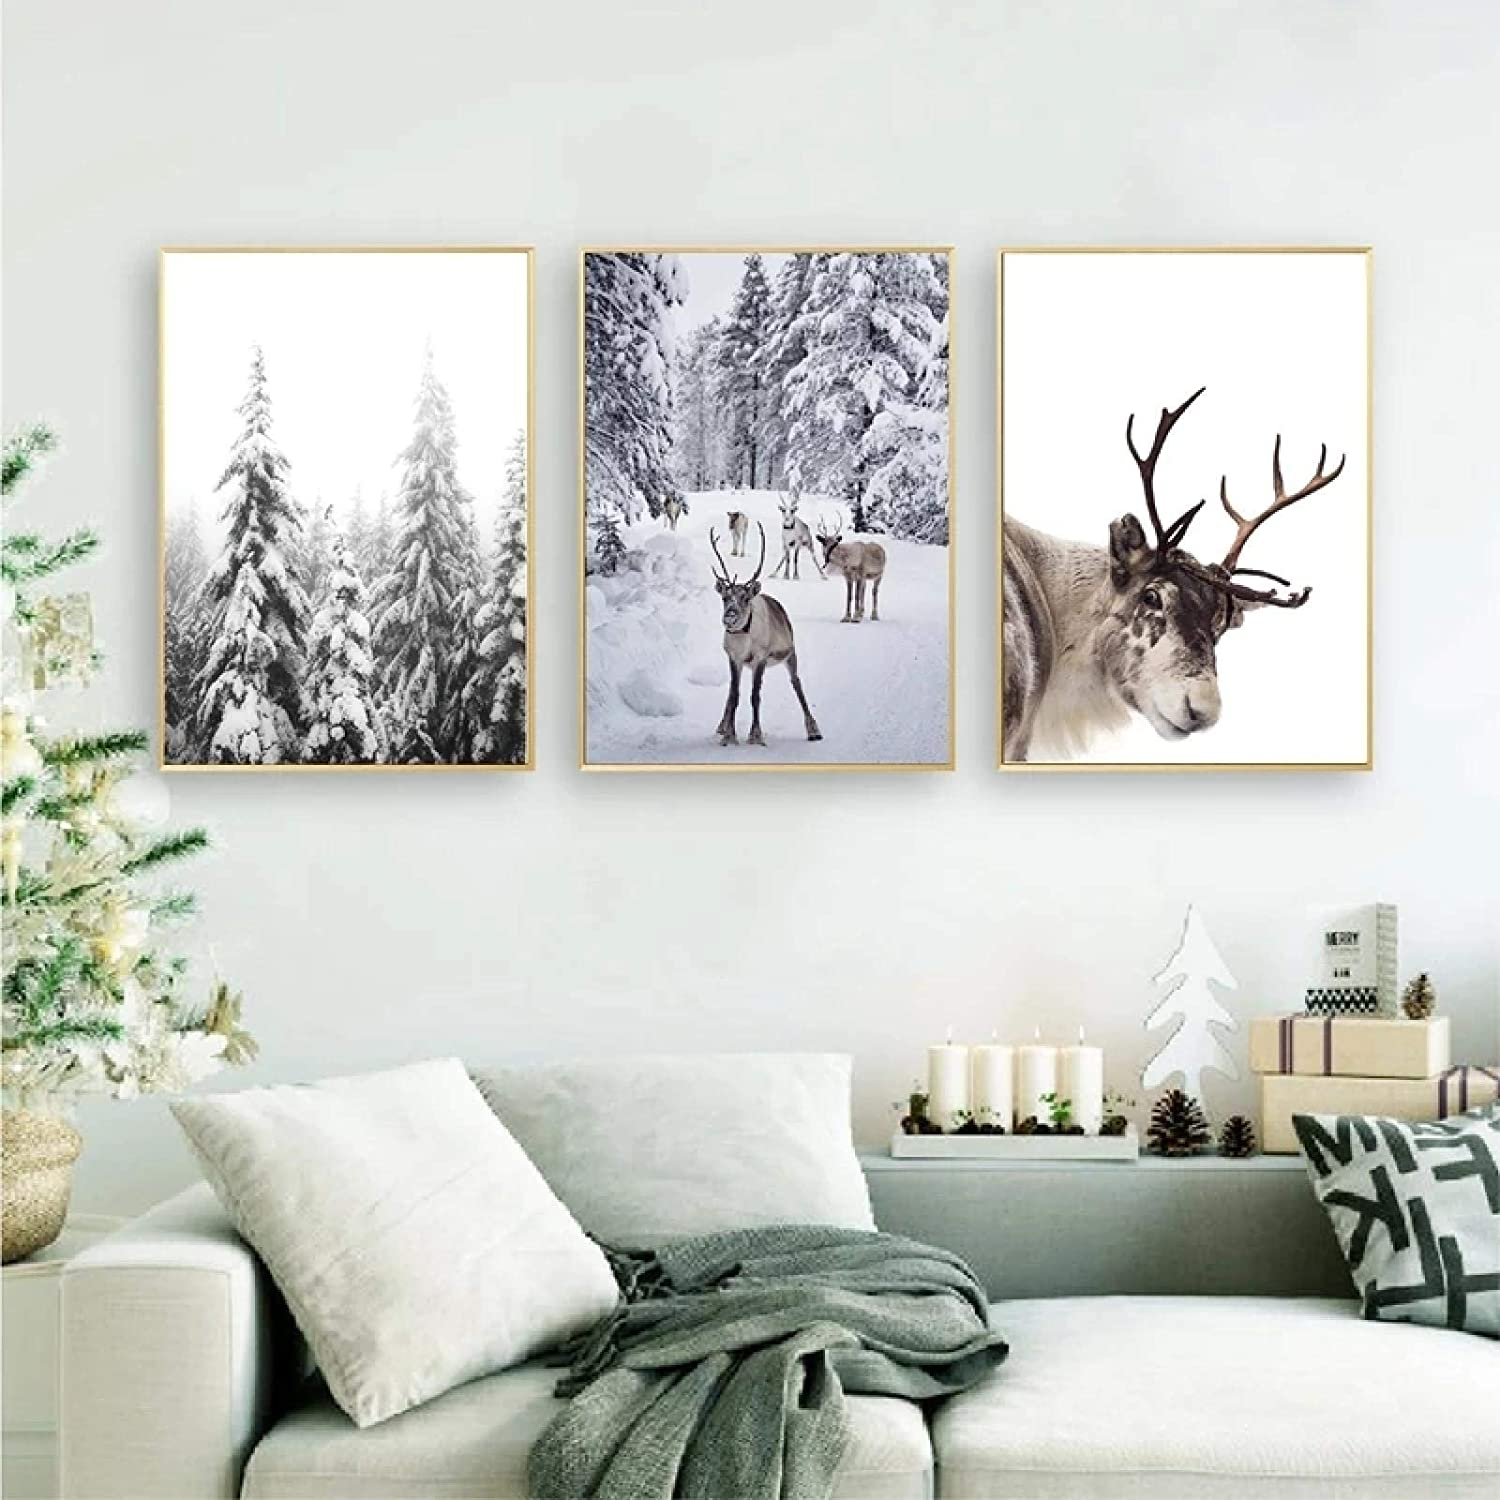 """Canvas Art Painting Snow Covered Trees Reindeer Poster Print Winter Nordic Christmas Picture Home Wall Decor Art 11.8""""x15.7""""(30x50cm) x3 with Frame"""